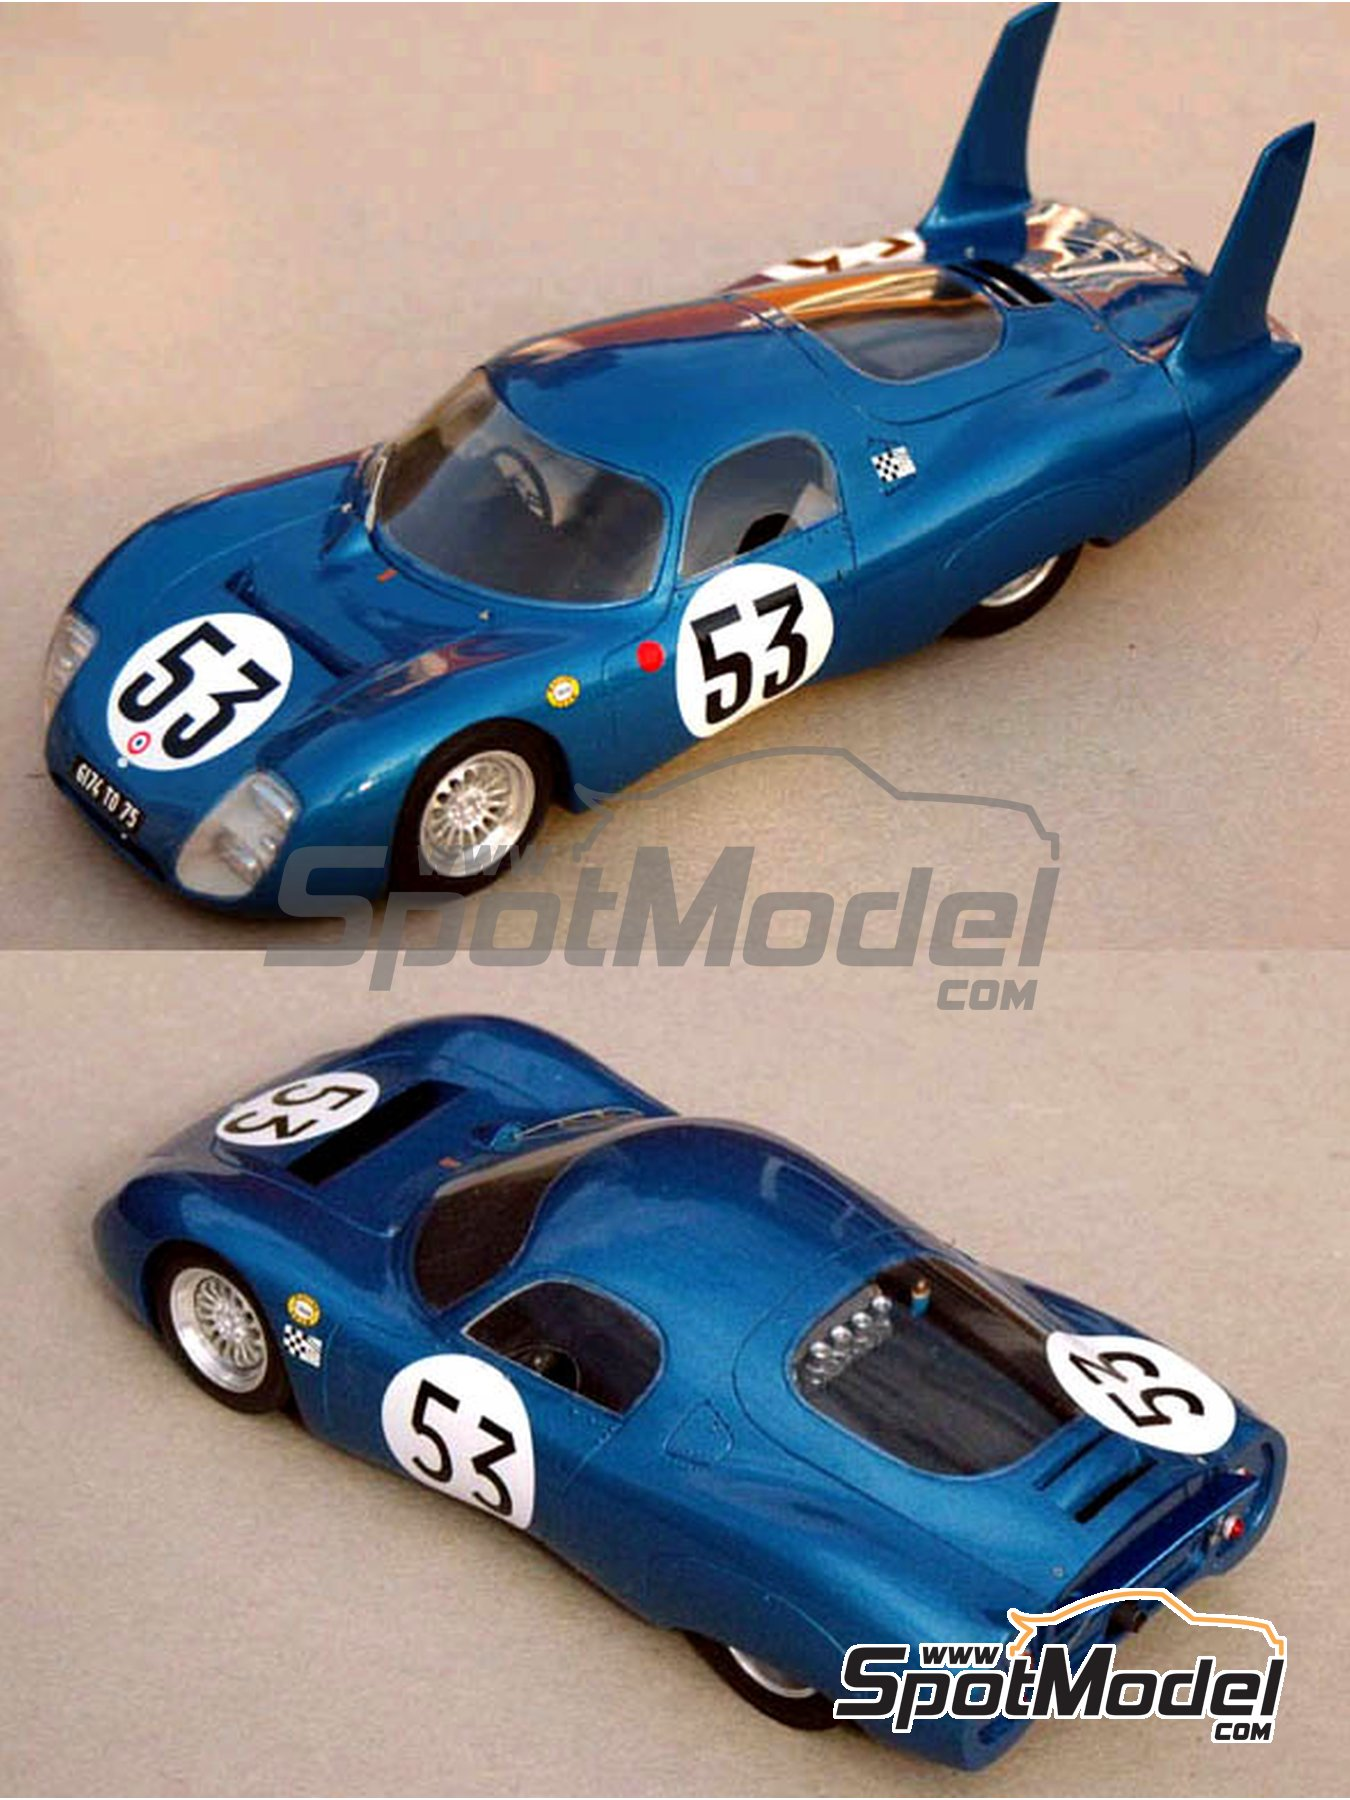 CD Peugeot SP 66 - 24 Hours Le Mans 1966, 1967 | Model car kit in 1/24 scale manufactured by Profil24 (ref. P24043) image